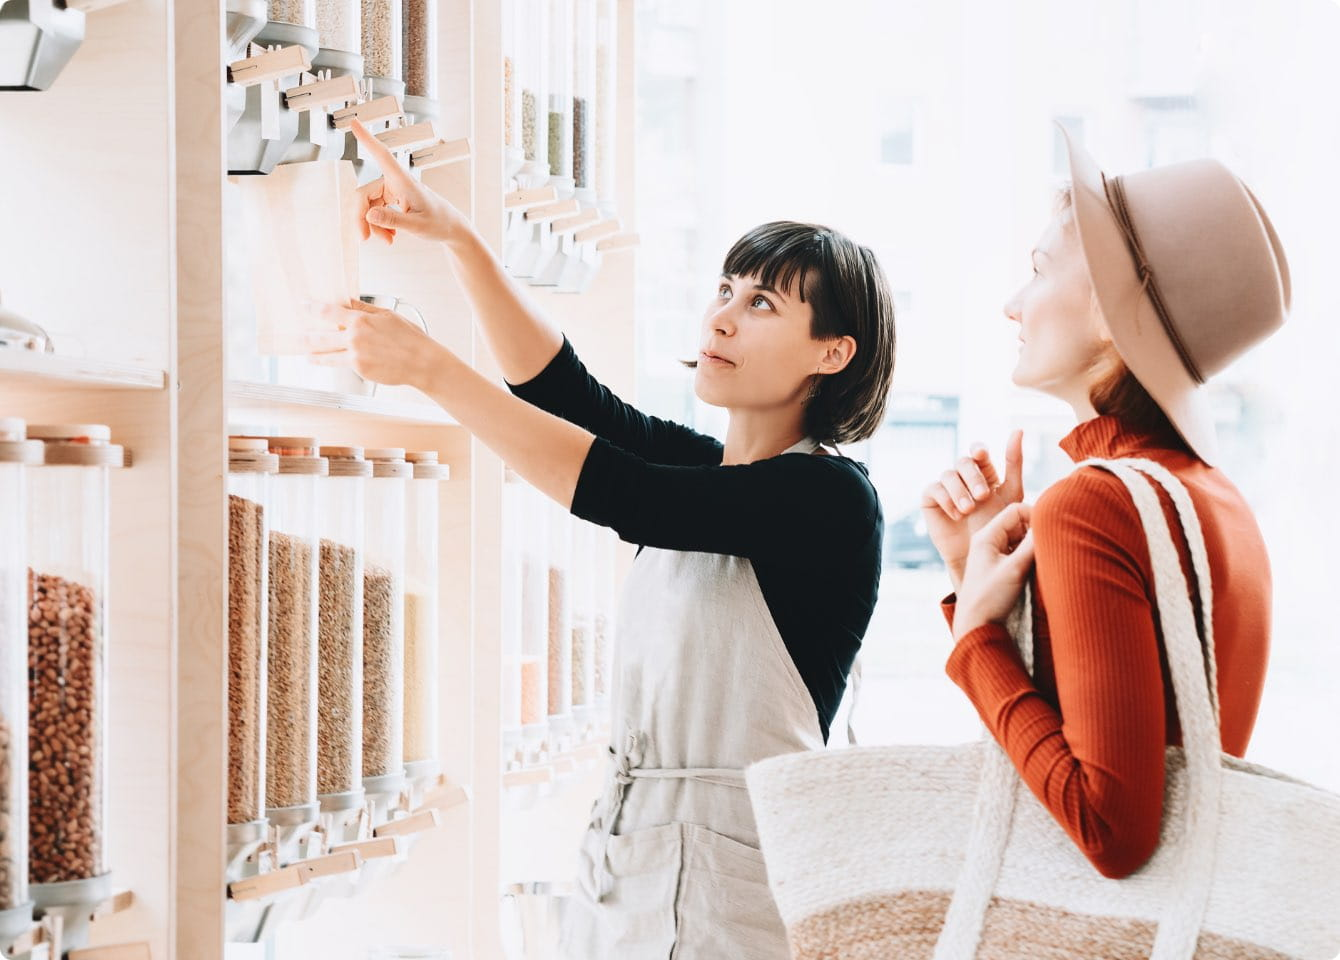 A clerk at a retail store getting a product for a customer